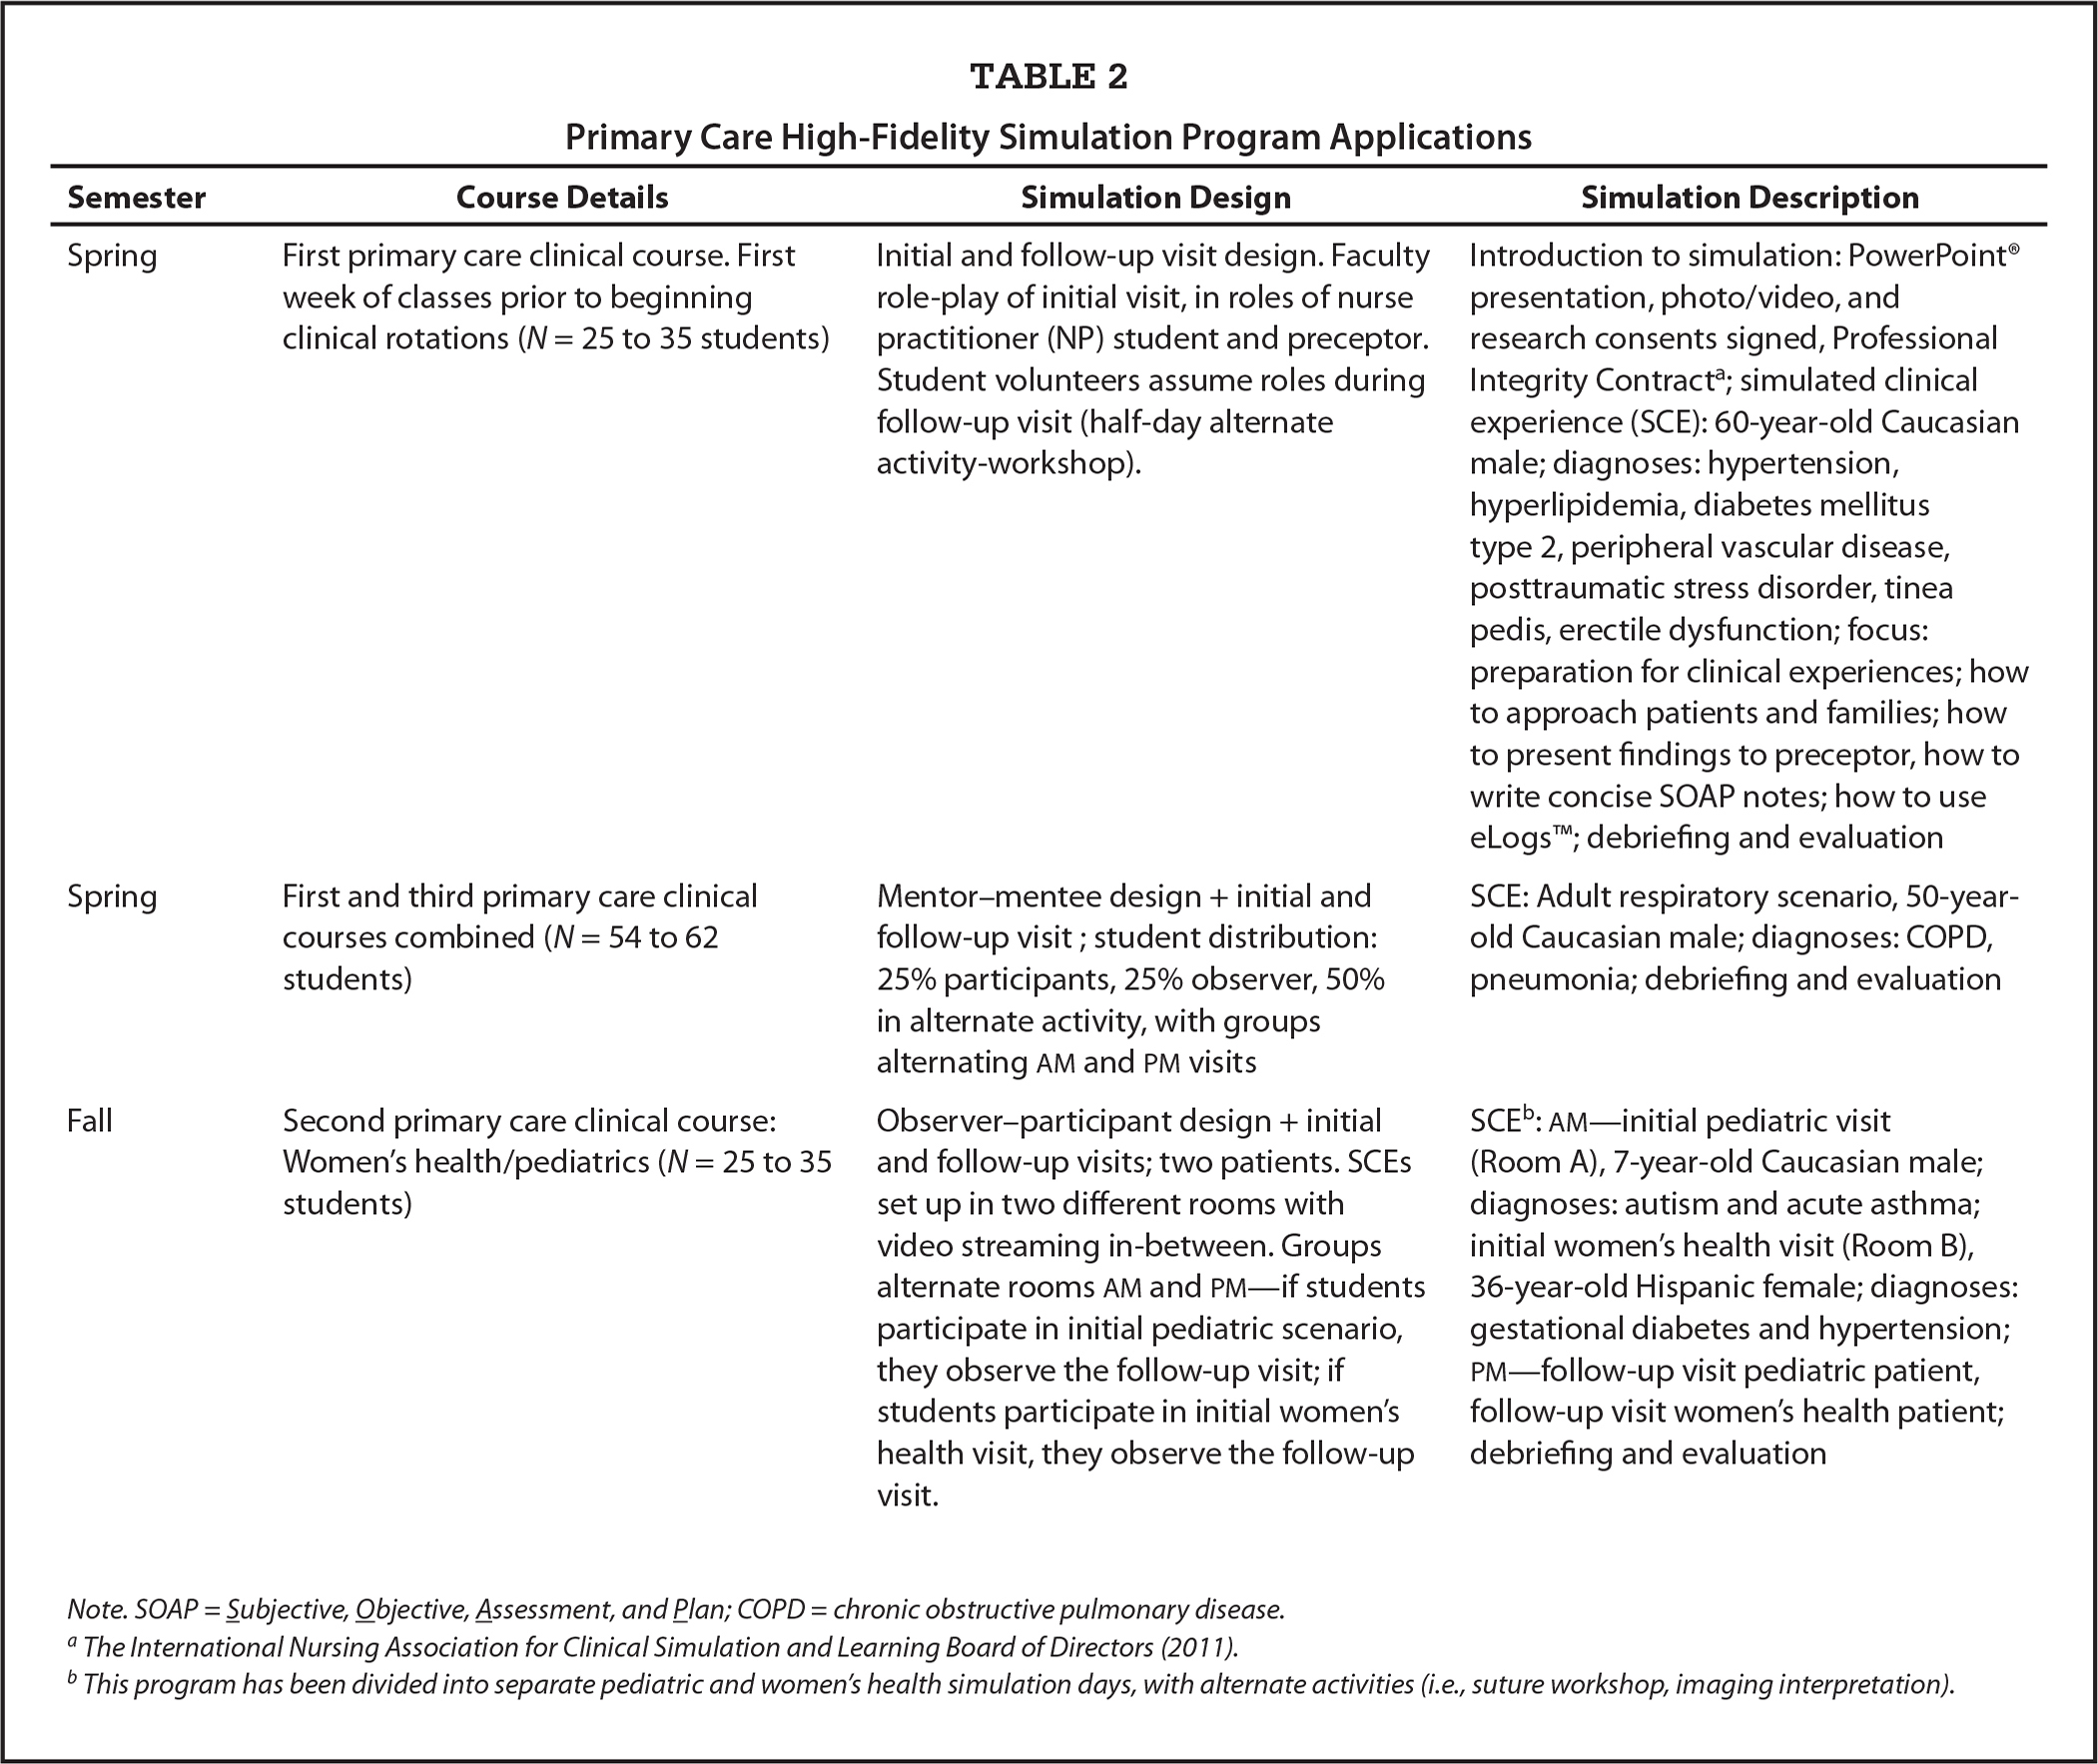 Primary Care High-Fidelity Simulation Program Applications